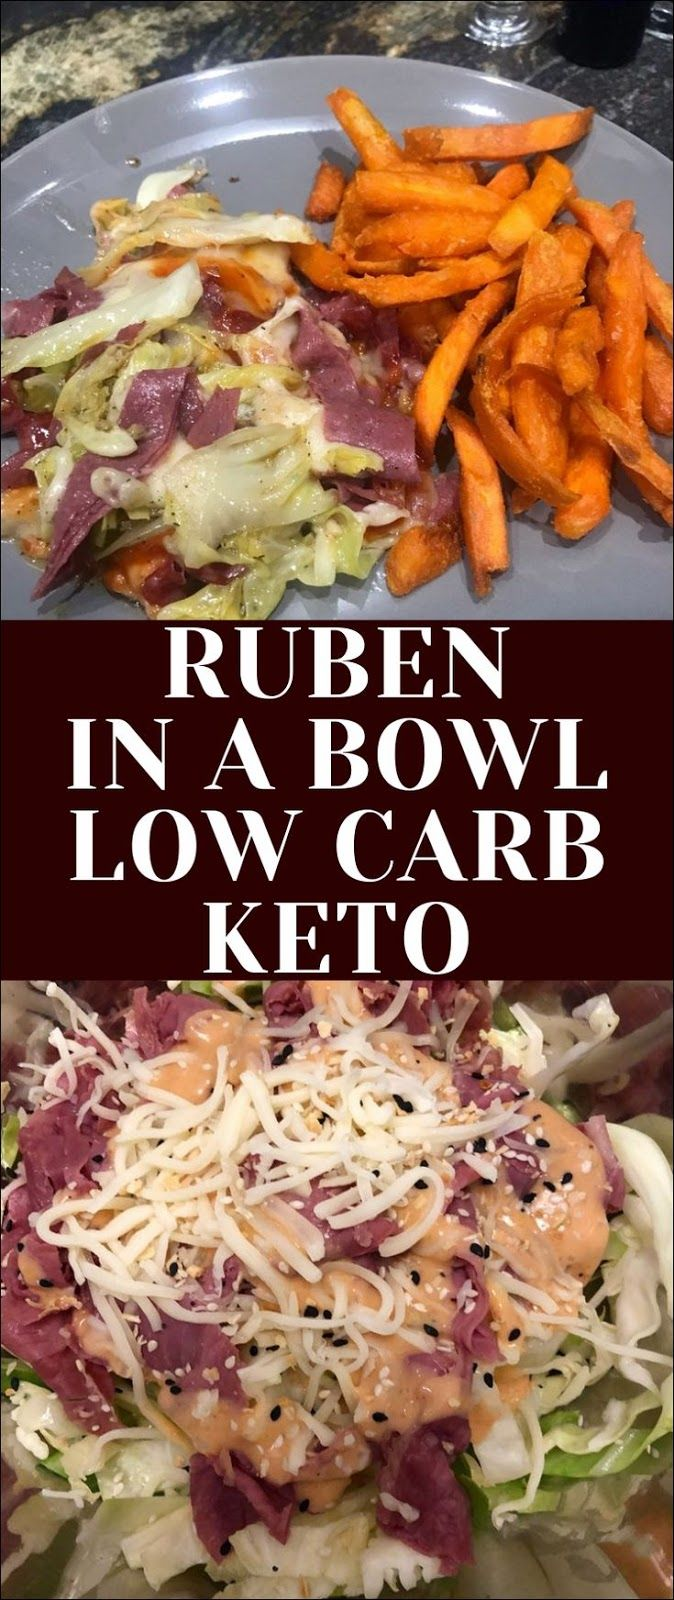 Ruben In A Bowl Low Carb Keto Beef Recipe Low Carb Low Carb Leftover Corned Beef Recipe